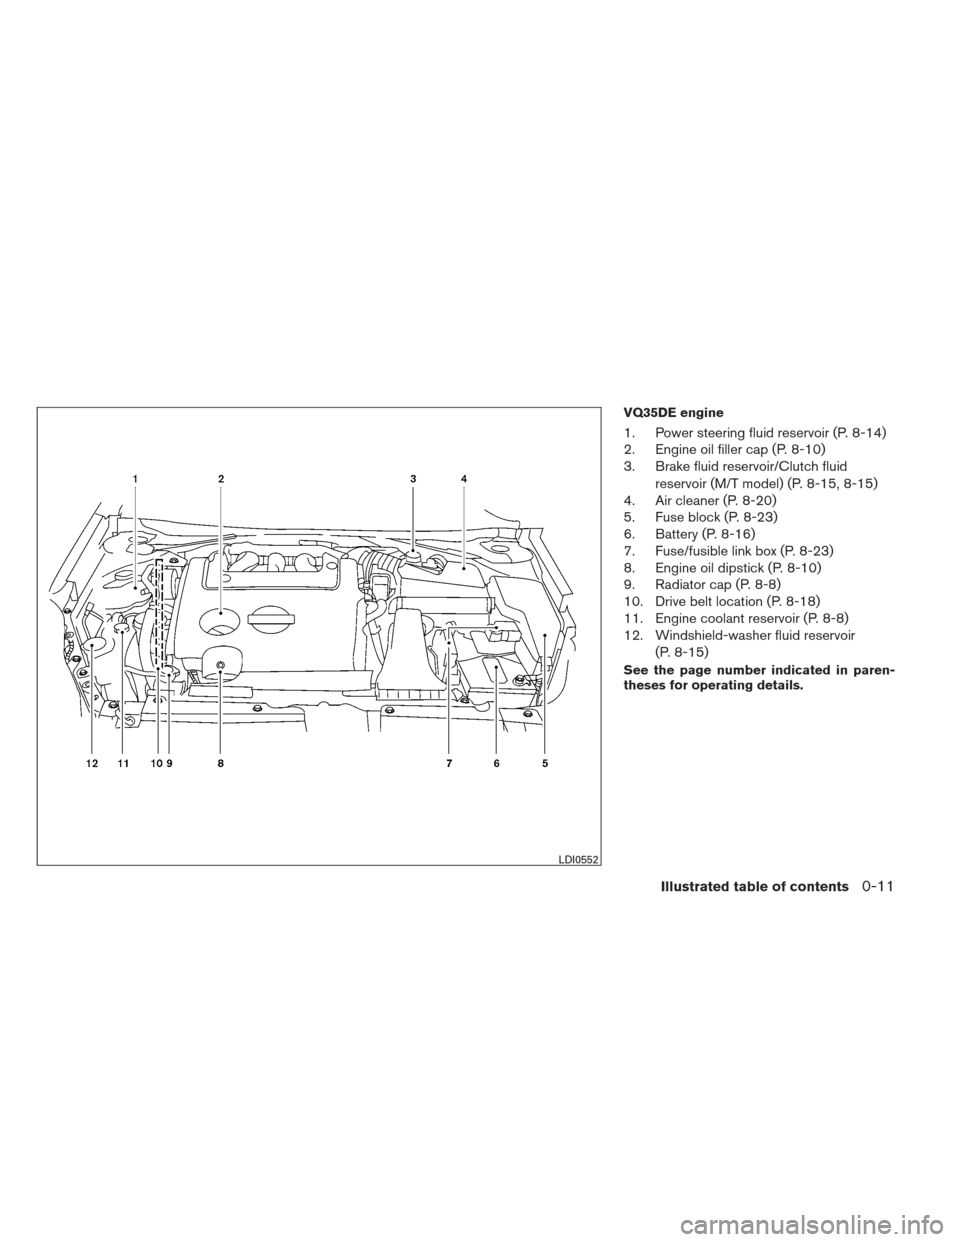 NISSAN ALTIMA COUPE 2012 D32 / 4.G User Guide VQ35DE engine 1. Power steering fluid reservoir (P. 8-14) 2. Engine oil filler cap (P. 8-10) 3. Brake fluid reservoir/Clutch fluidreservoir (M/T model) (P. 8-15, 8-15) 4. Air cleaner (P. 8-20) 5. Fuse